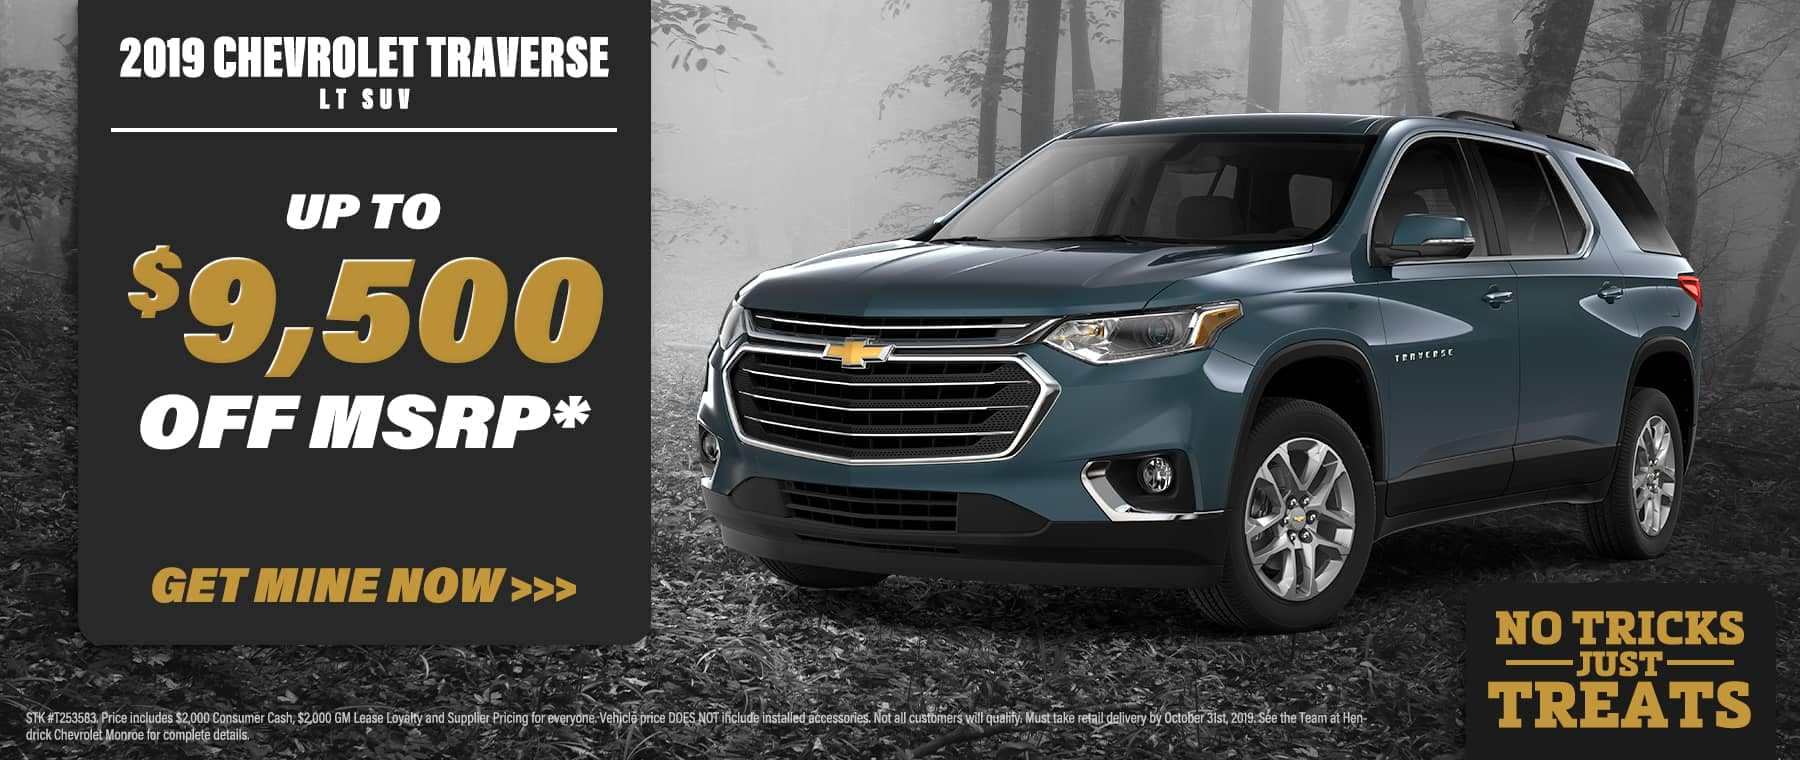 Chevy Traverse special banner with dark foggy trees in the background